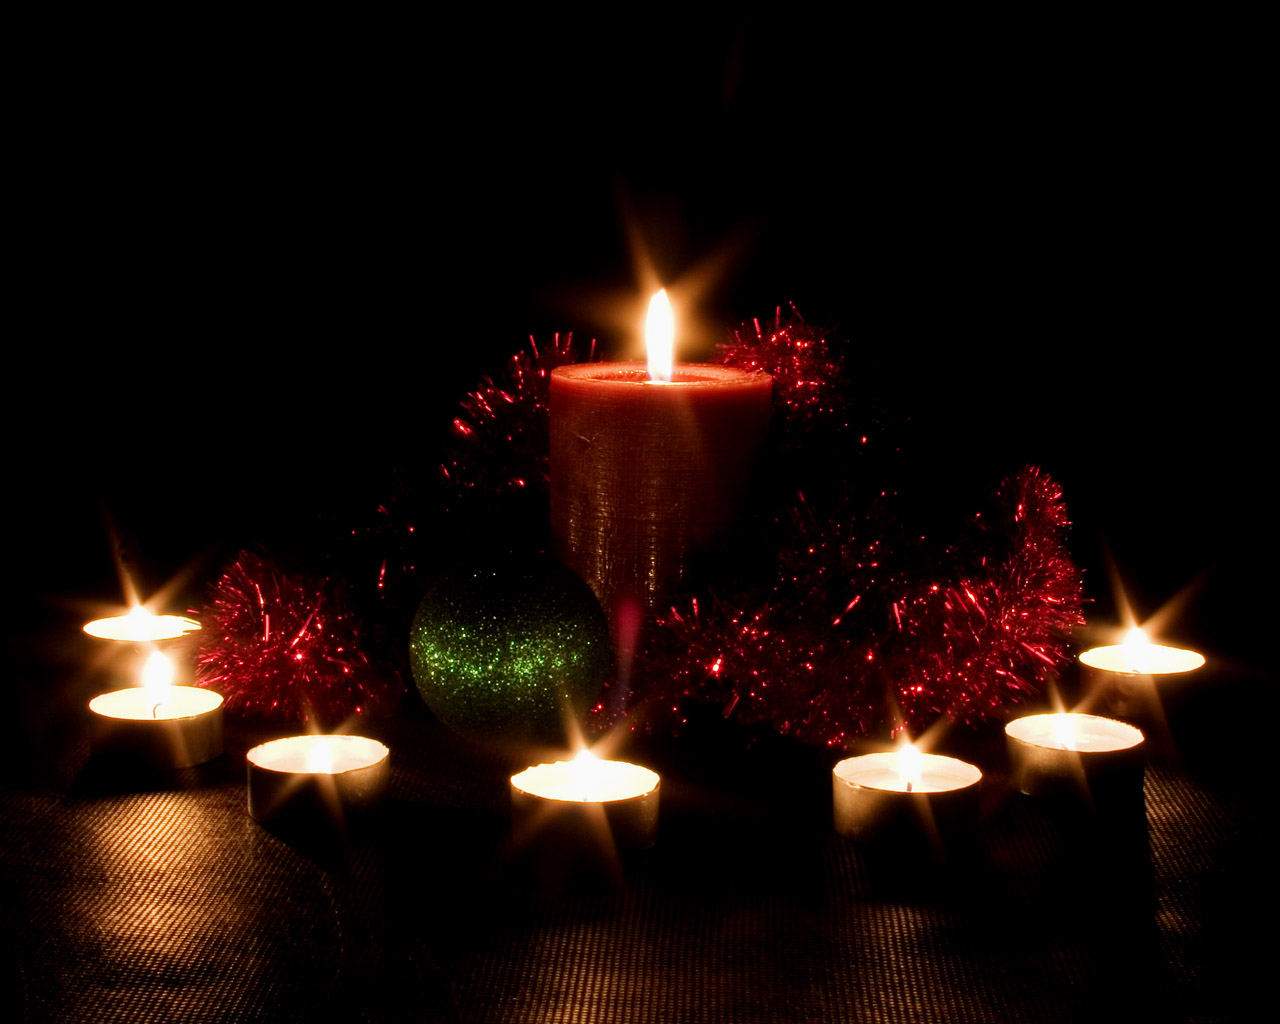 Candle Art Hd Wallpaper: Romantic Candle Light , Romantic Candlelight Pictures